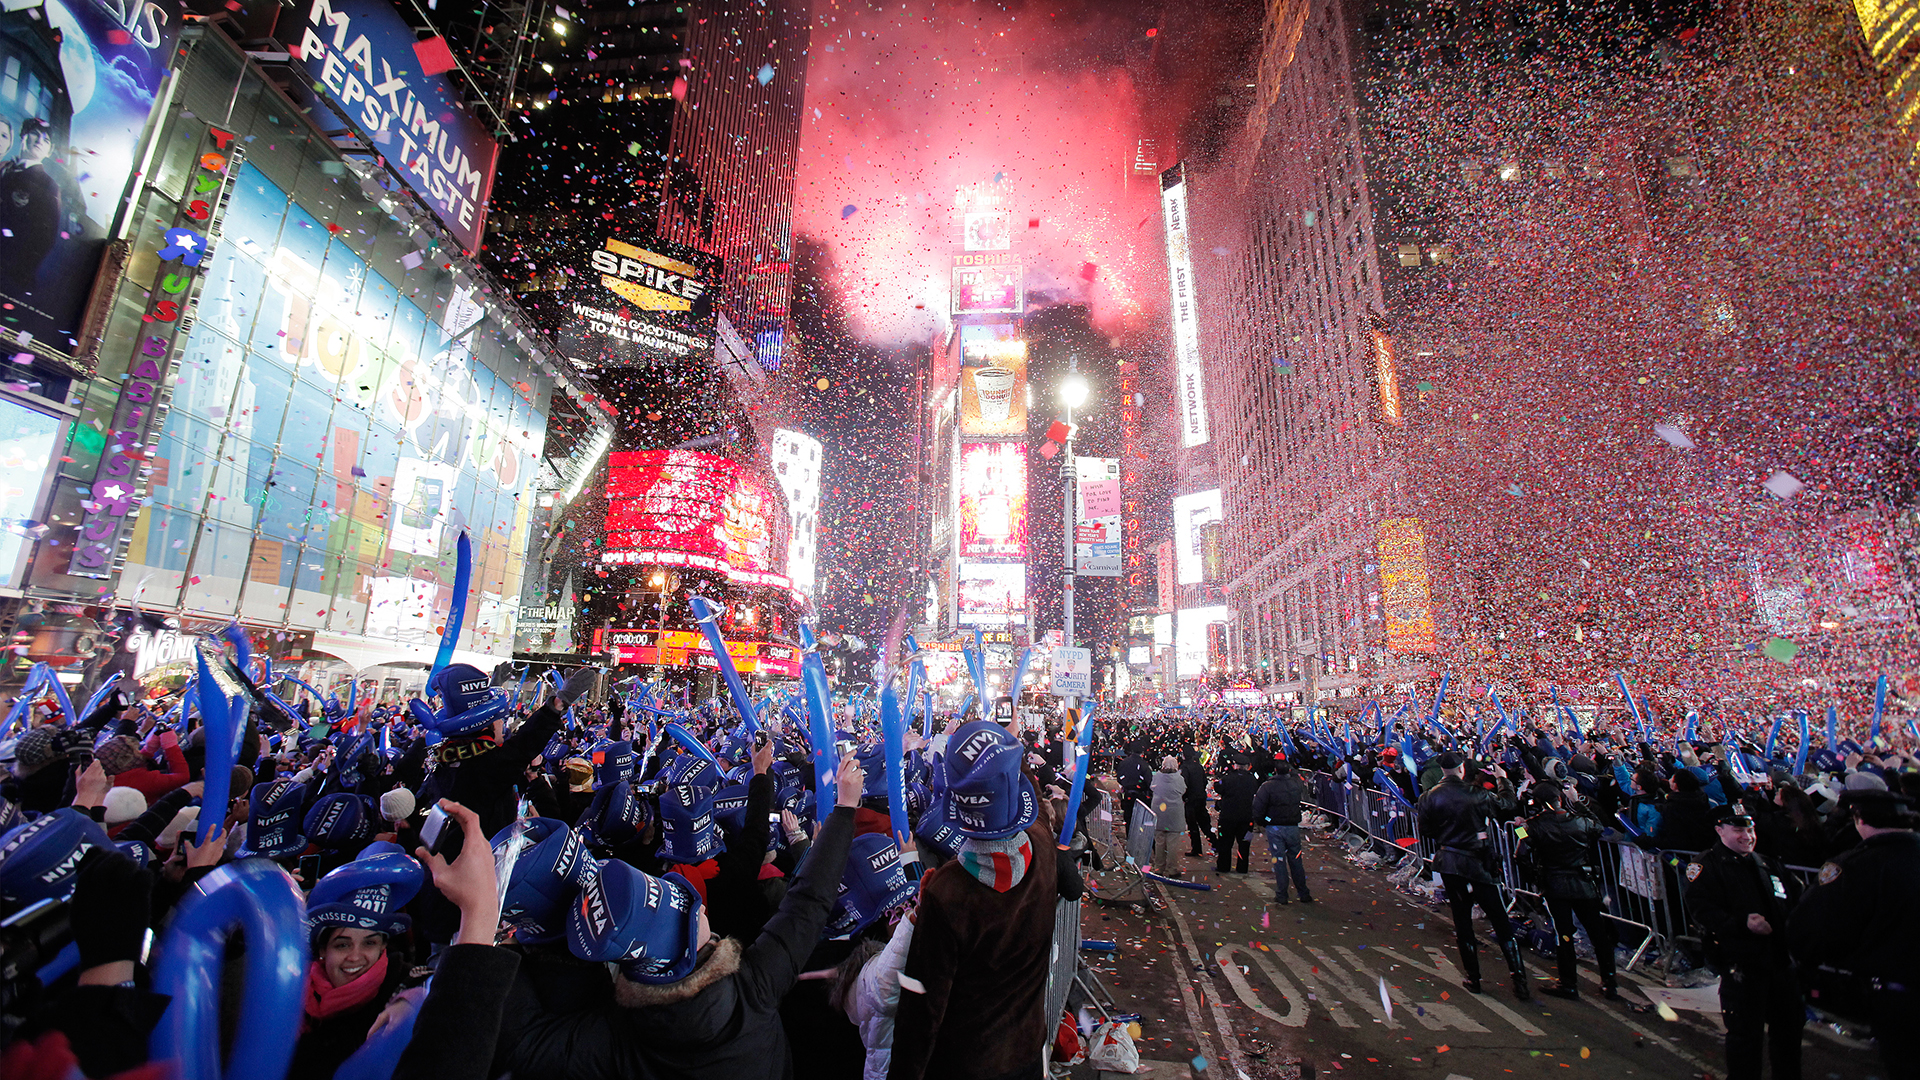 http://media1.s-nbcnews.com/i/streams/2013/December/131230/2D10976631-today-131230-times-square-new-years.jpg